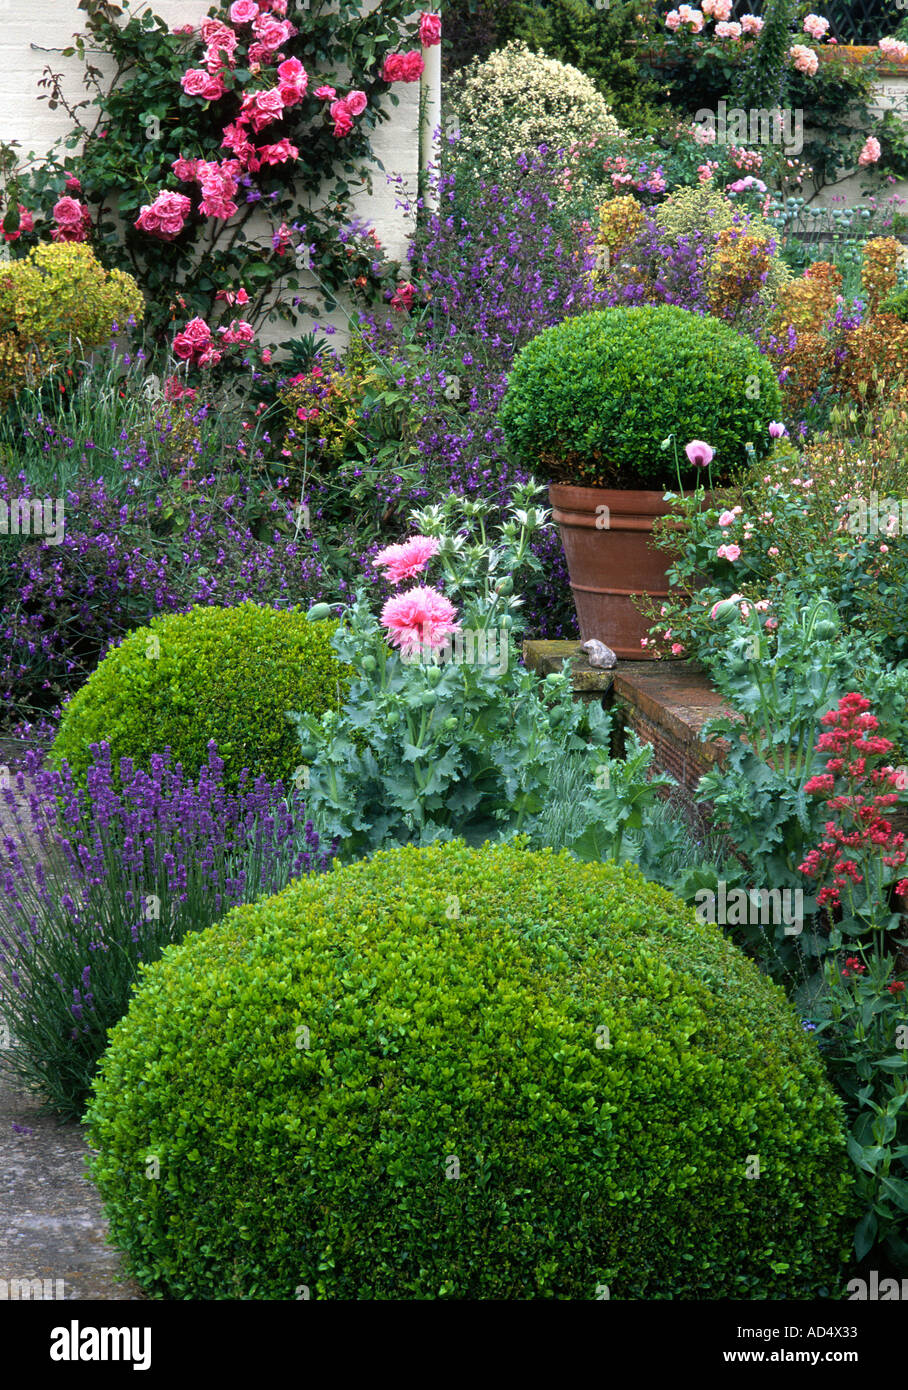 Garden Design Hedges kettle hill, box hedges norfolk england english garden design